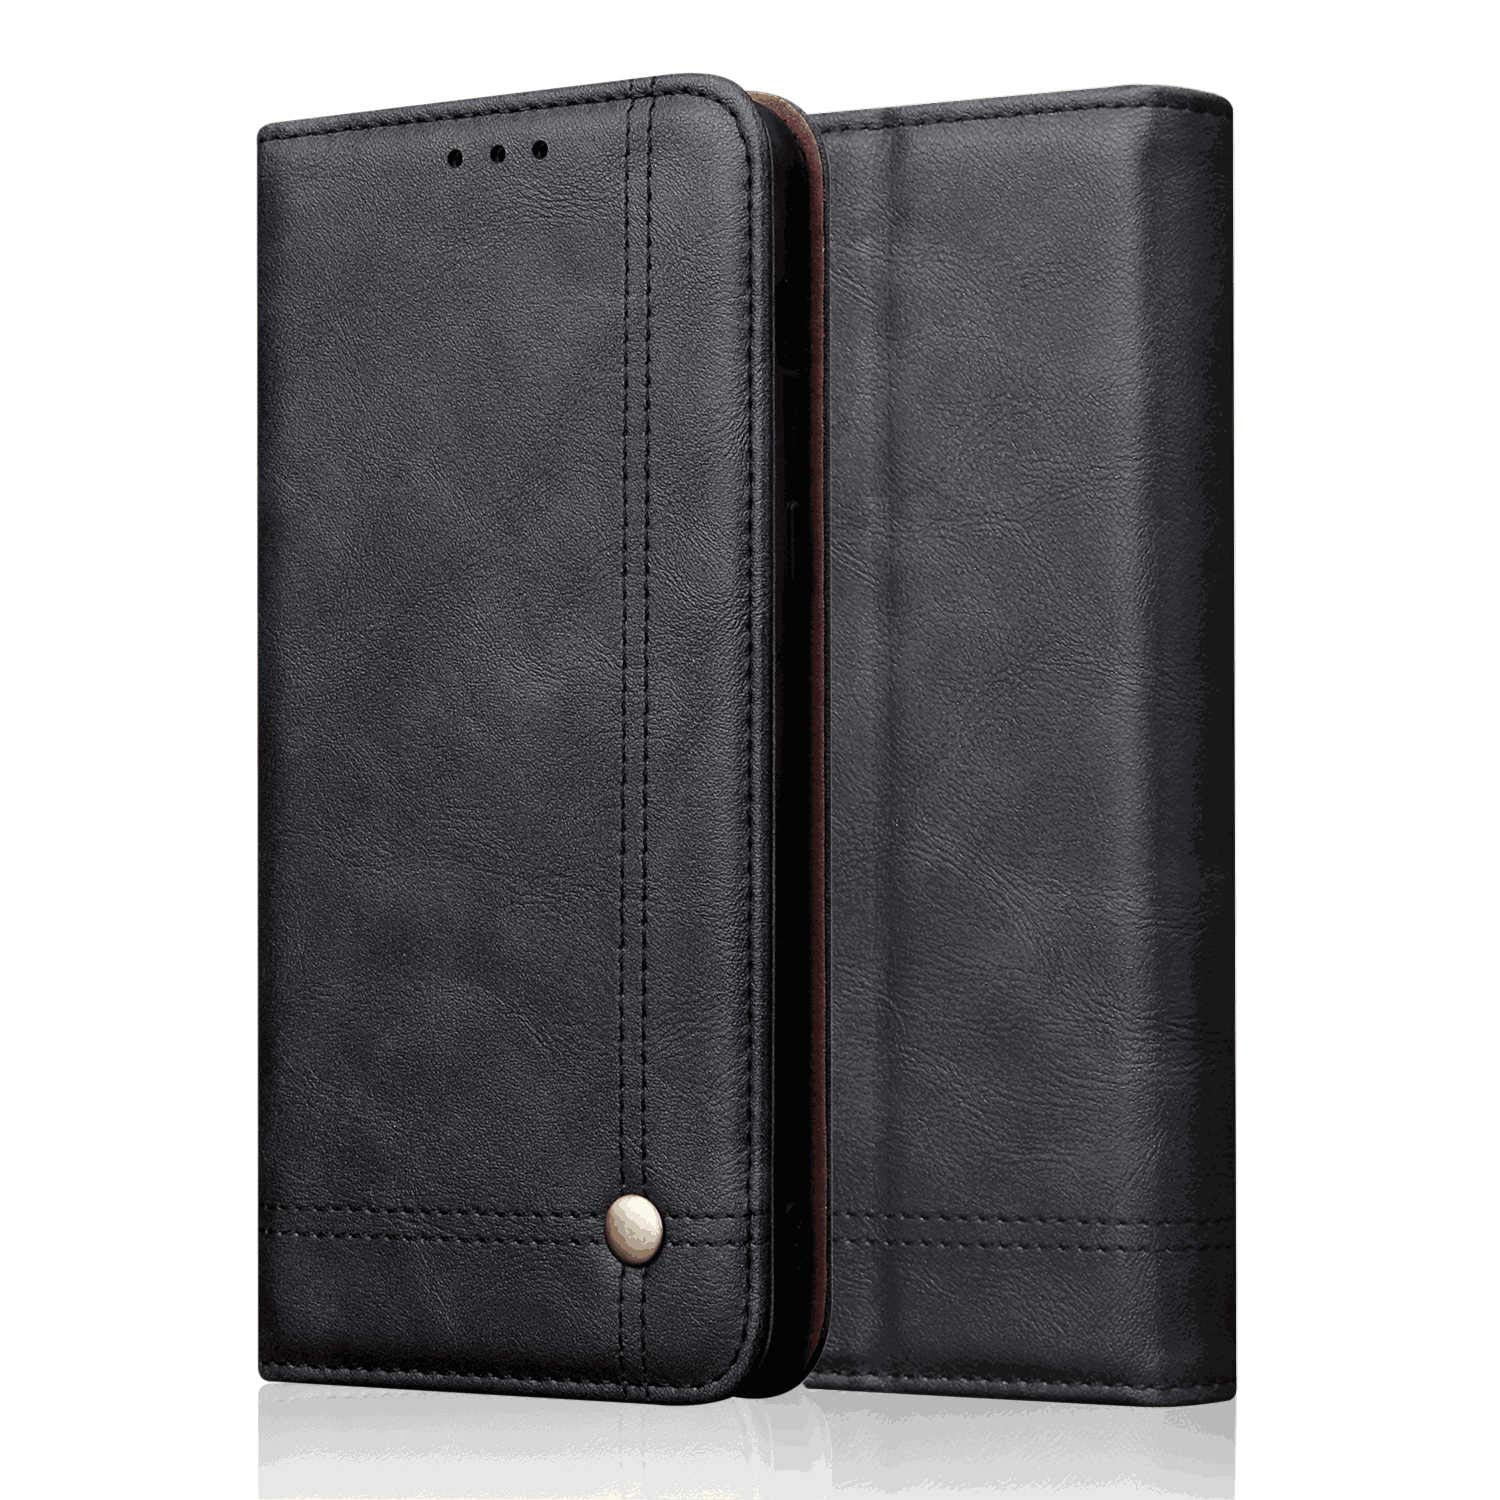 PU Leather Flip Cover Compatible with Samsung Galaxy S10e, Black Wallet Case for Samsung Galaxy S10e